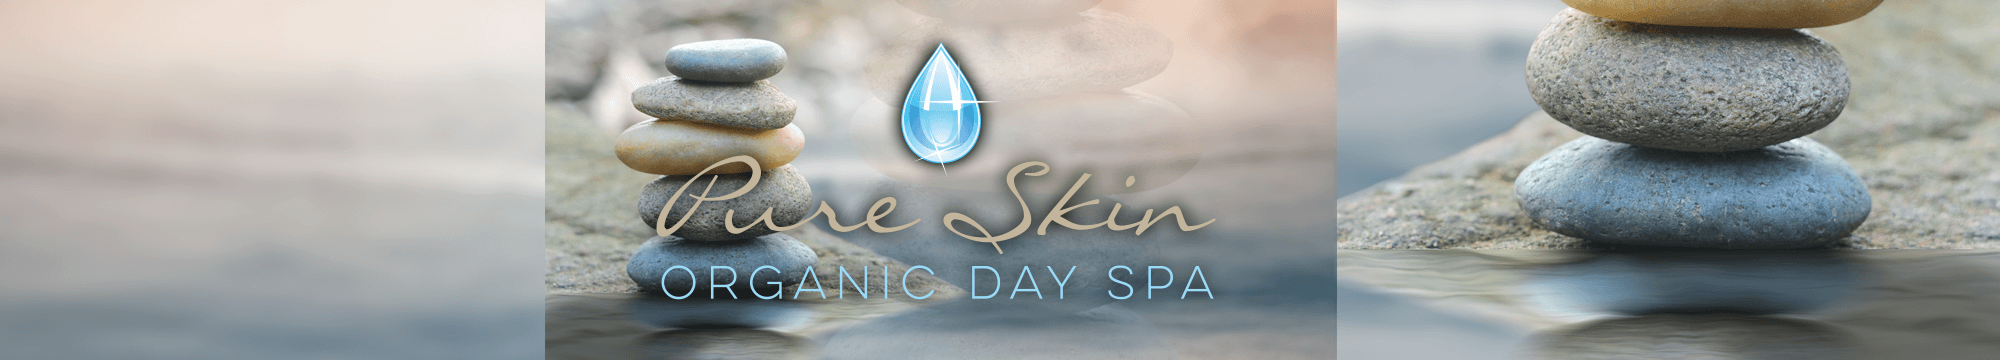 Pure Skin Organic Day Spa